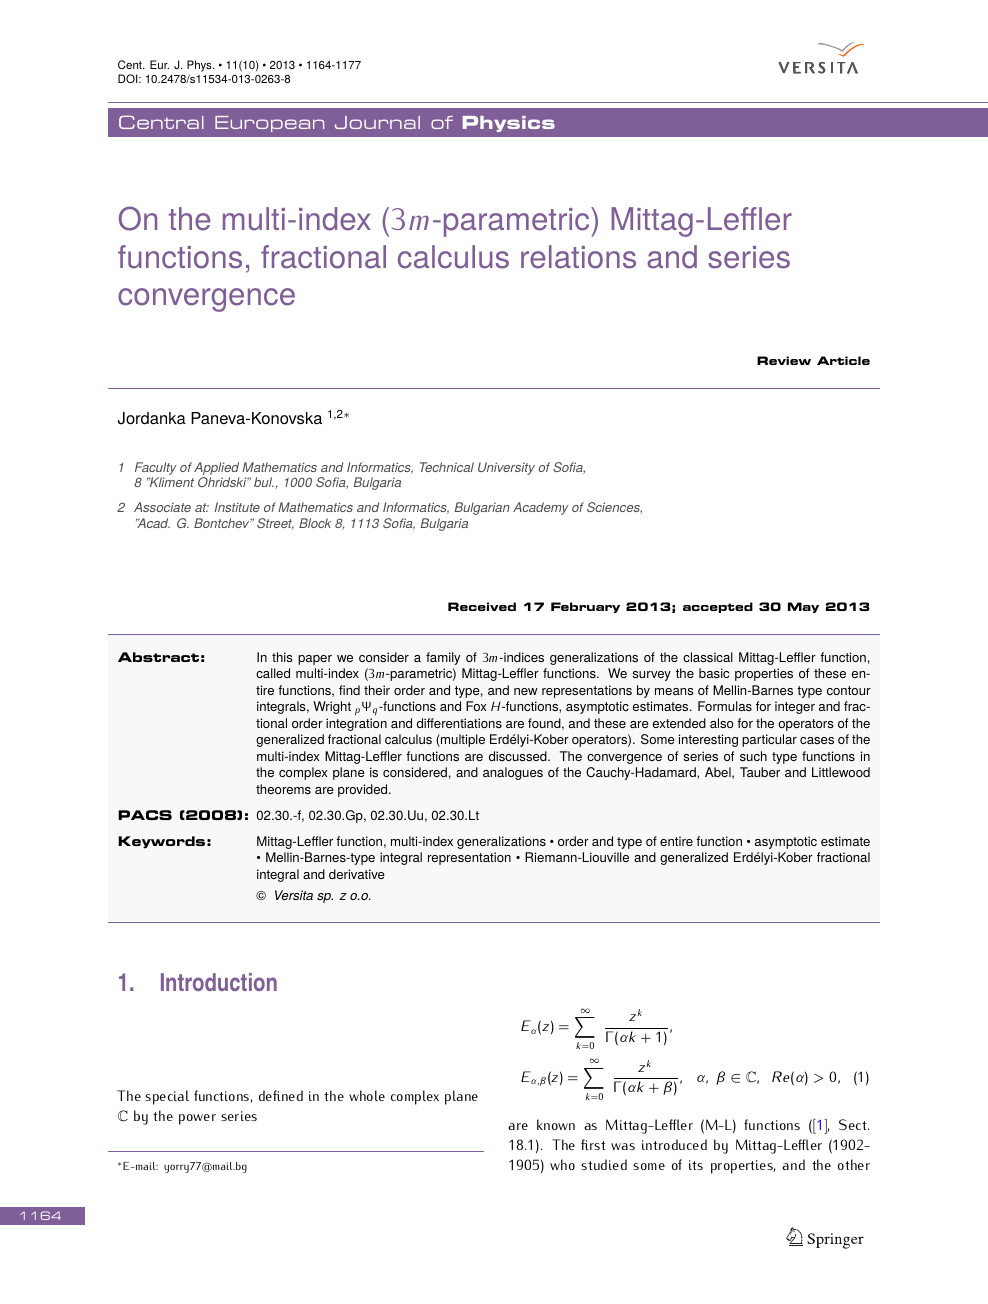 On the multi-index (3m-parametric) Mittag-Leffler functions